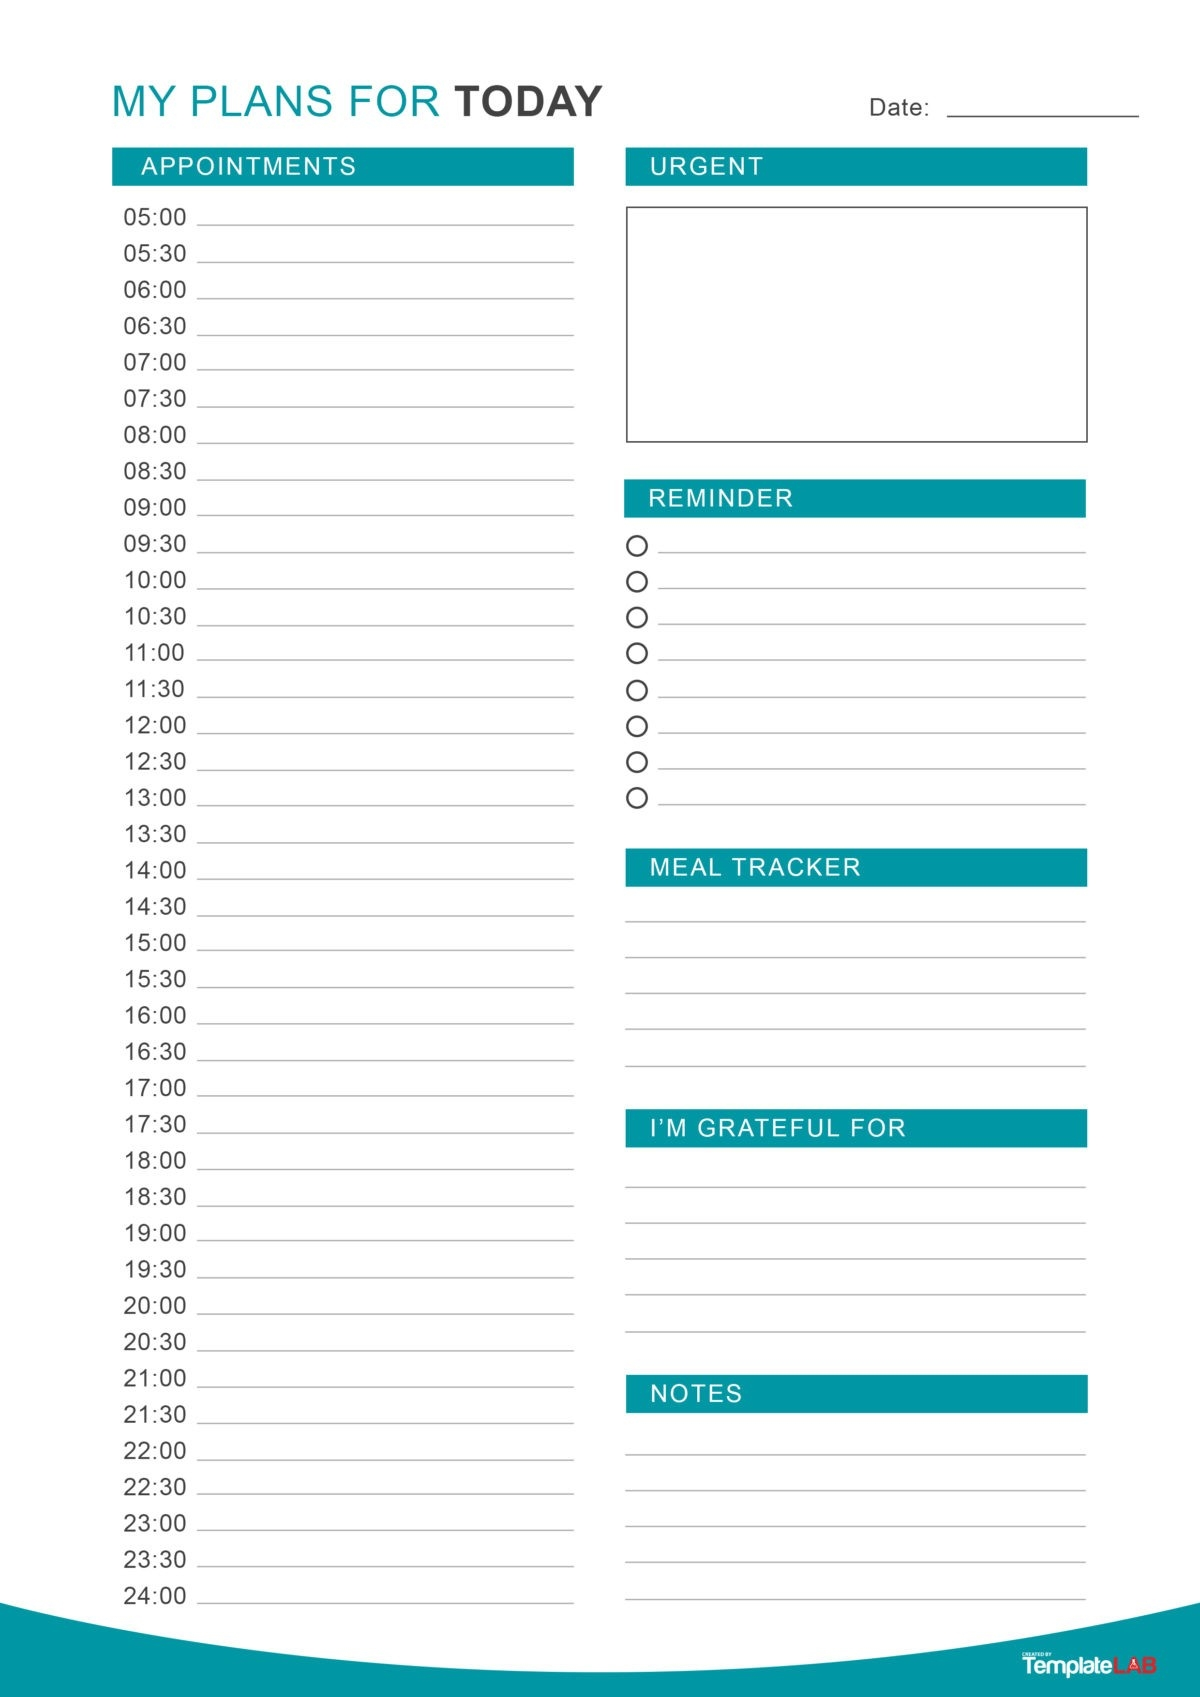 47 Printable Daily Planner Templates (Free In Word/Excel/Pdf)  Blank Dialy Planner